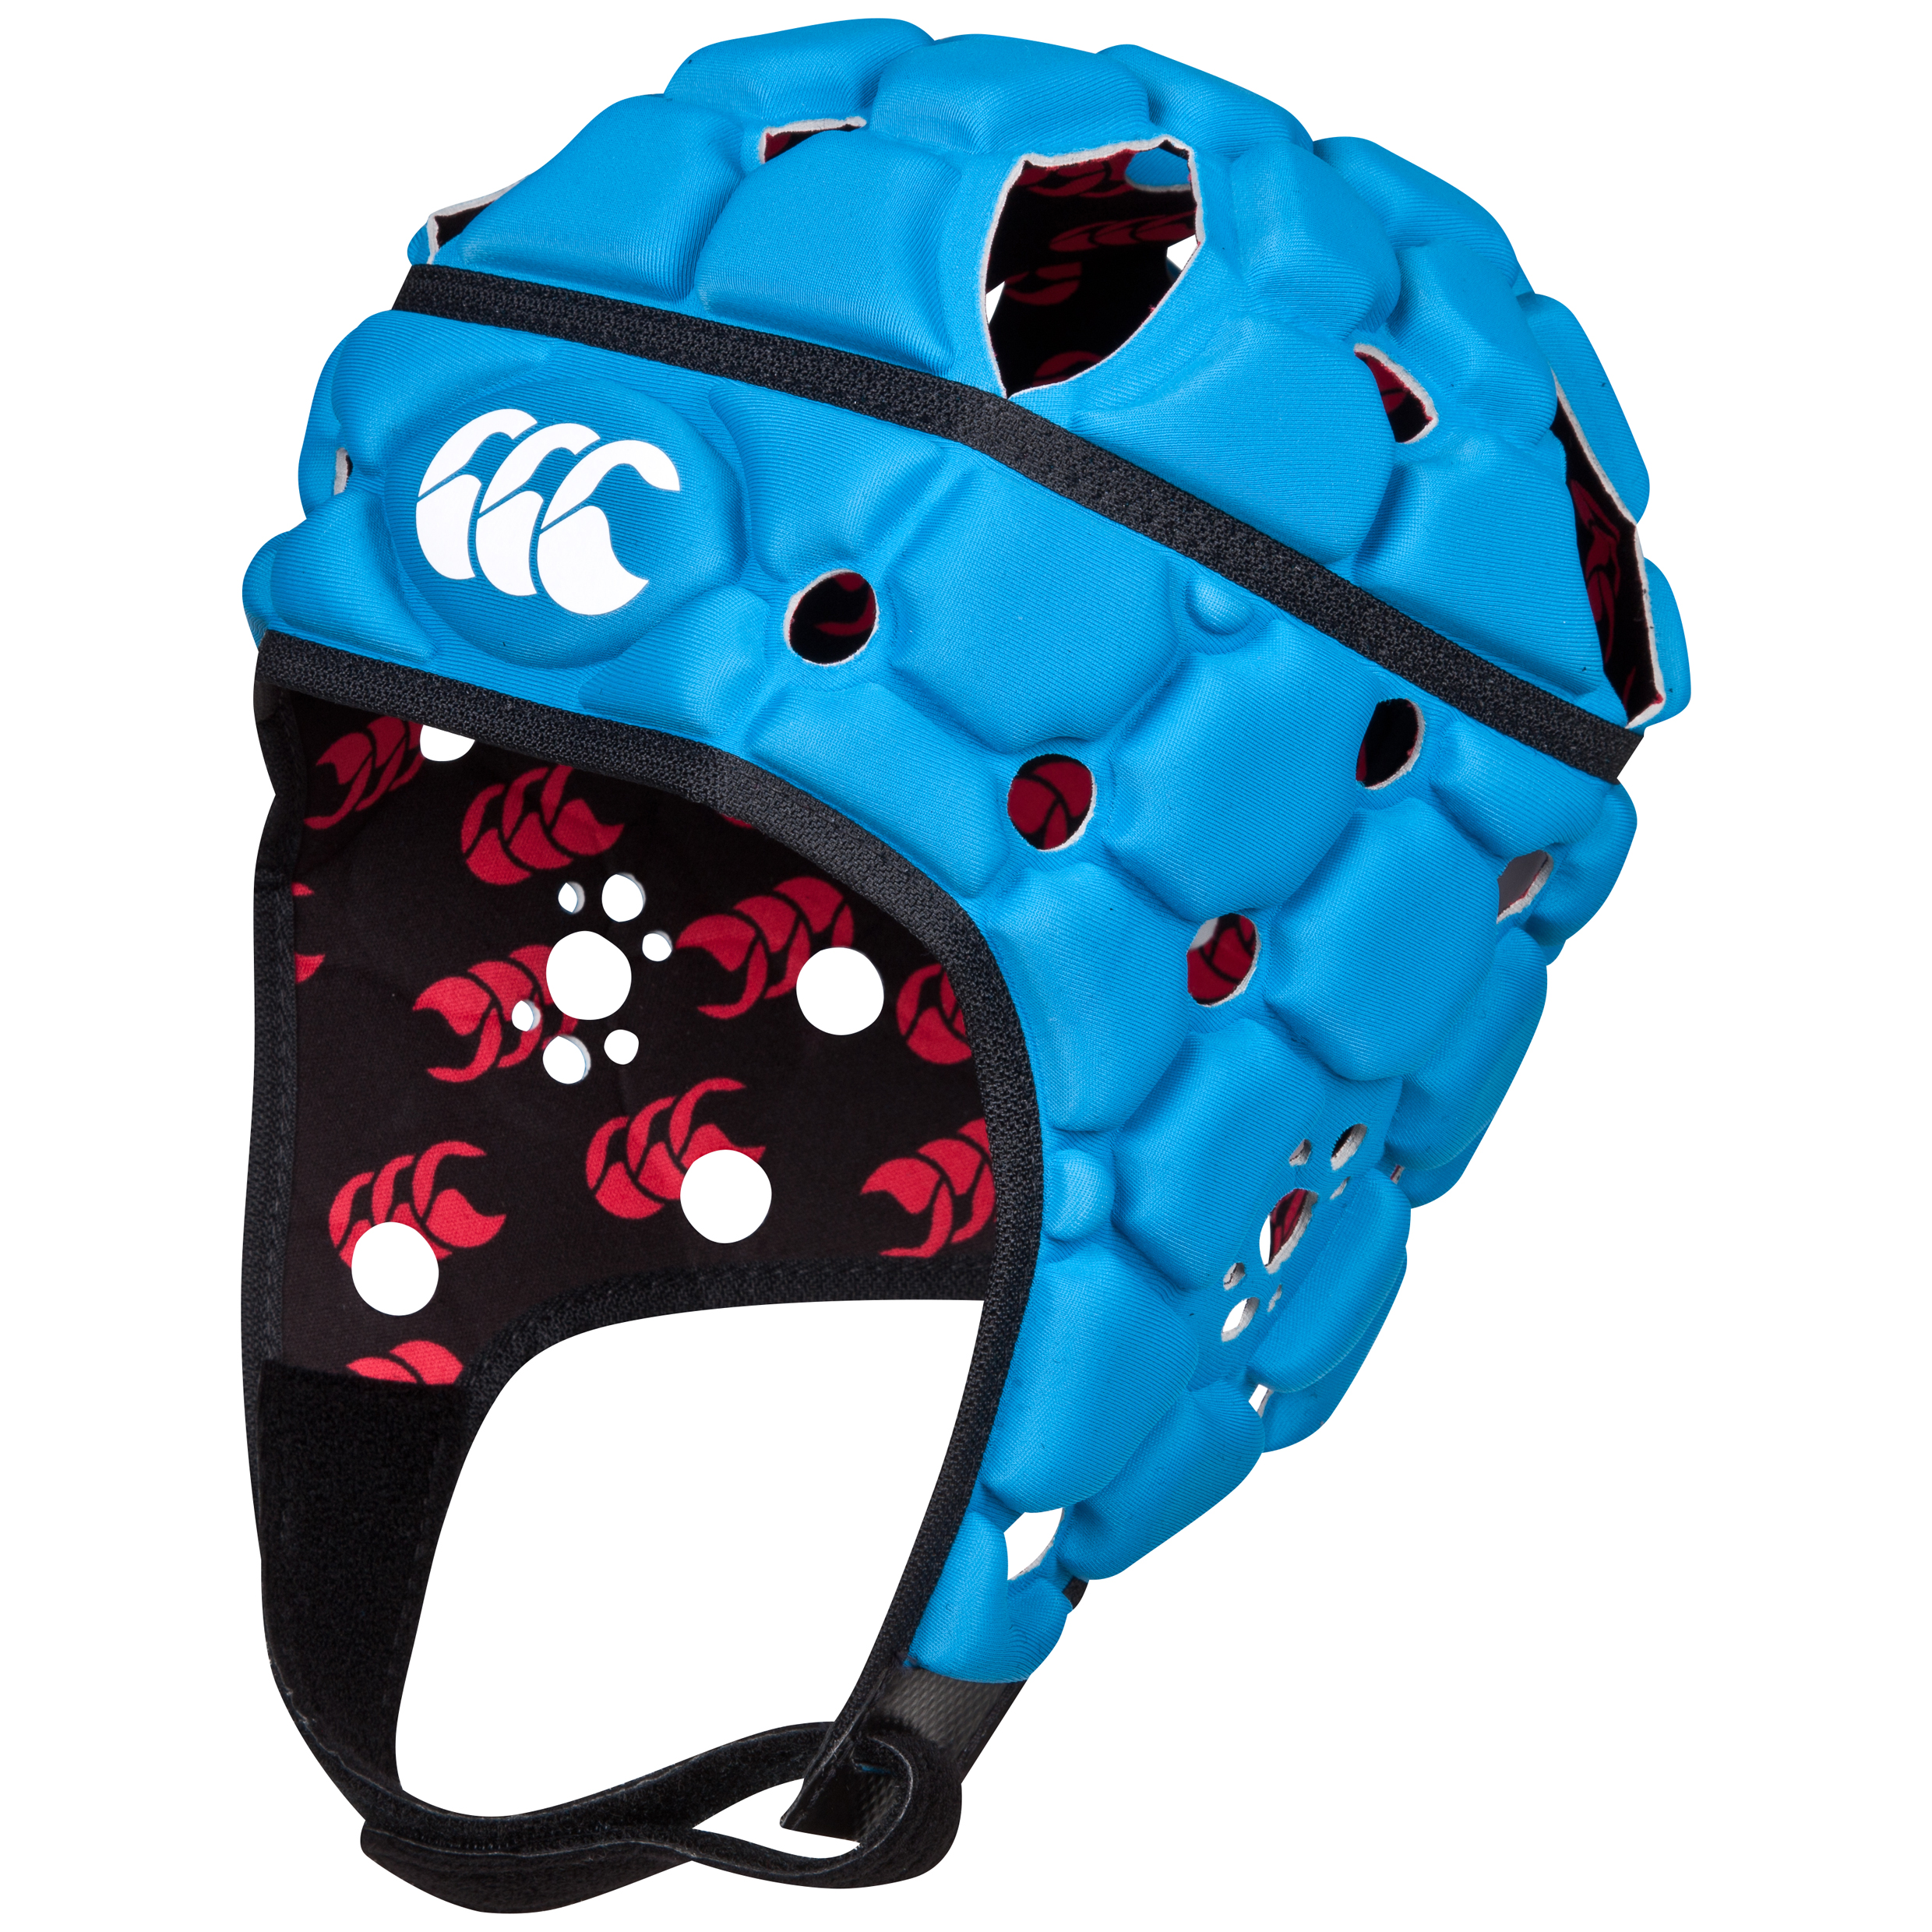 Canterbury Ventilator Headguard - Kids Blue